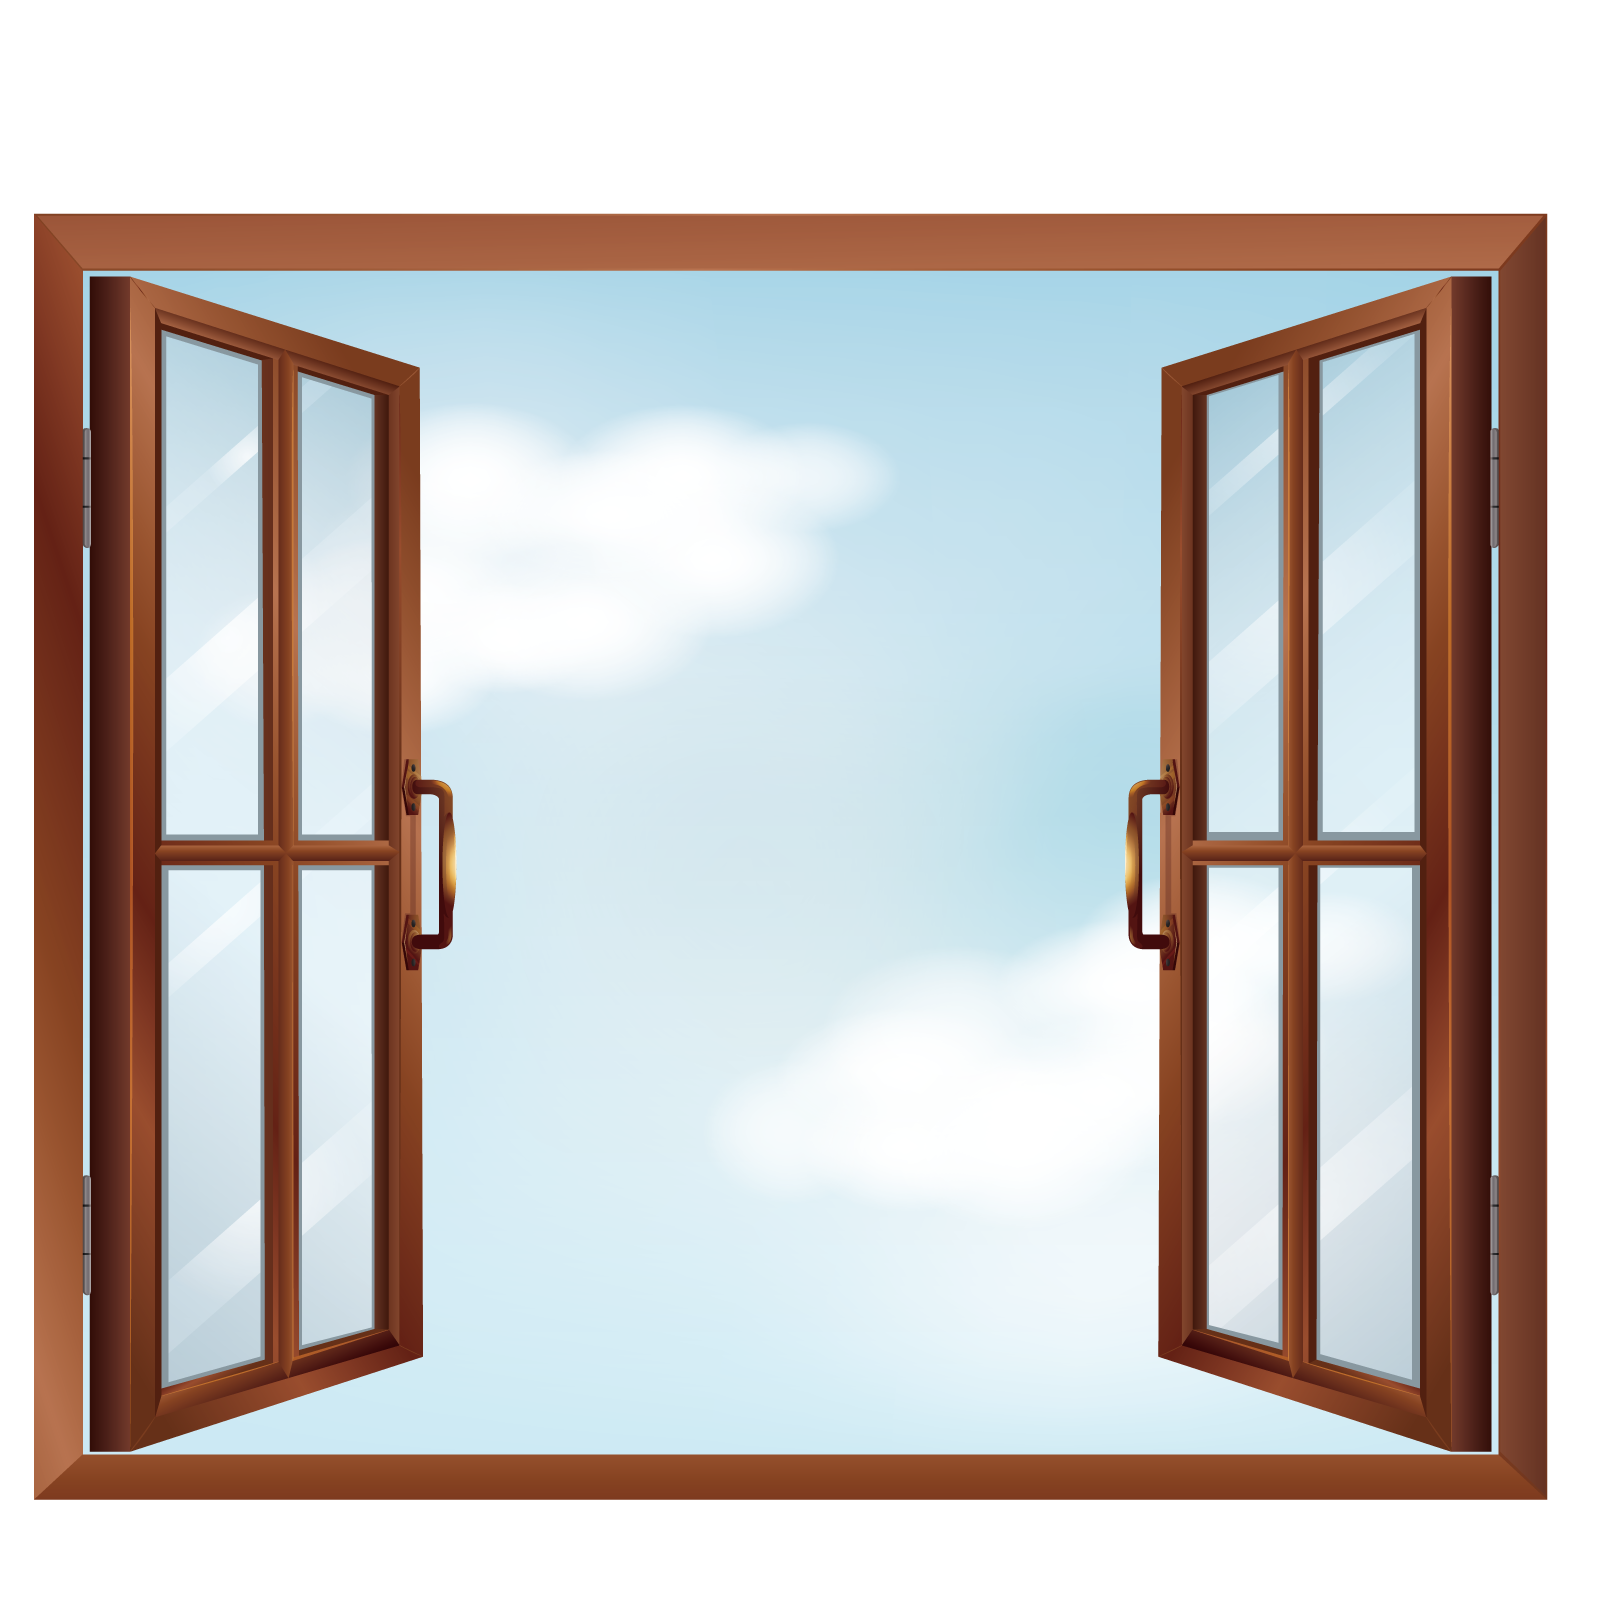 picture royalty free stock Art vector open windows. Window clip